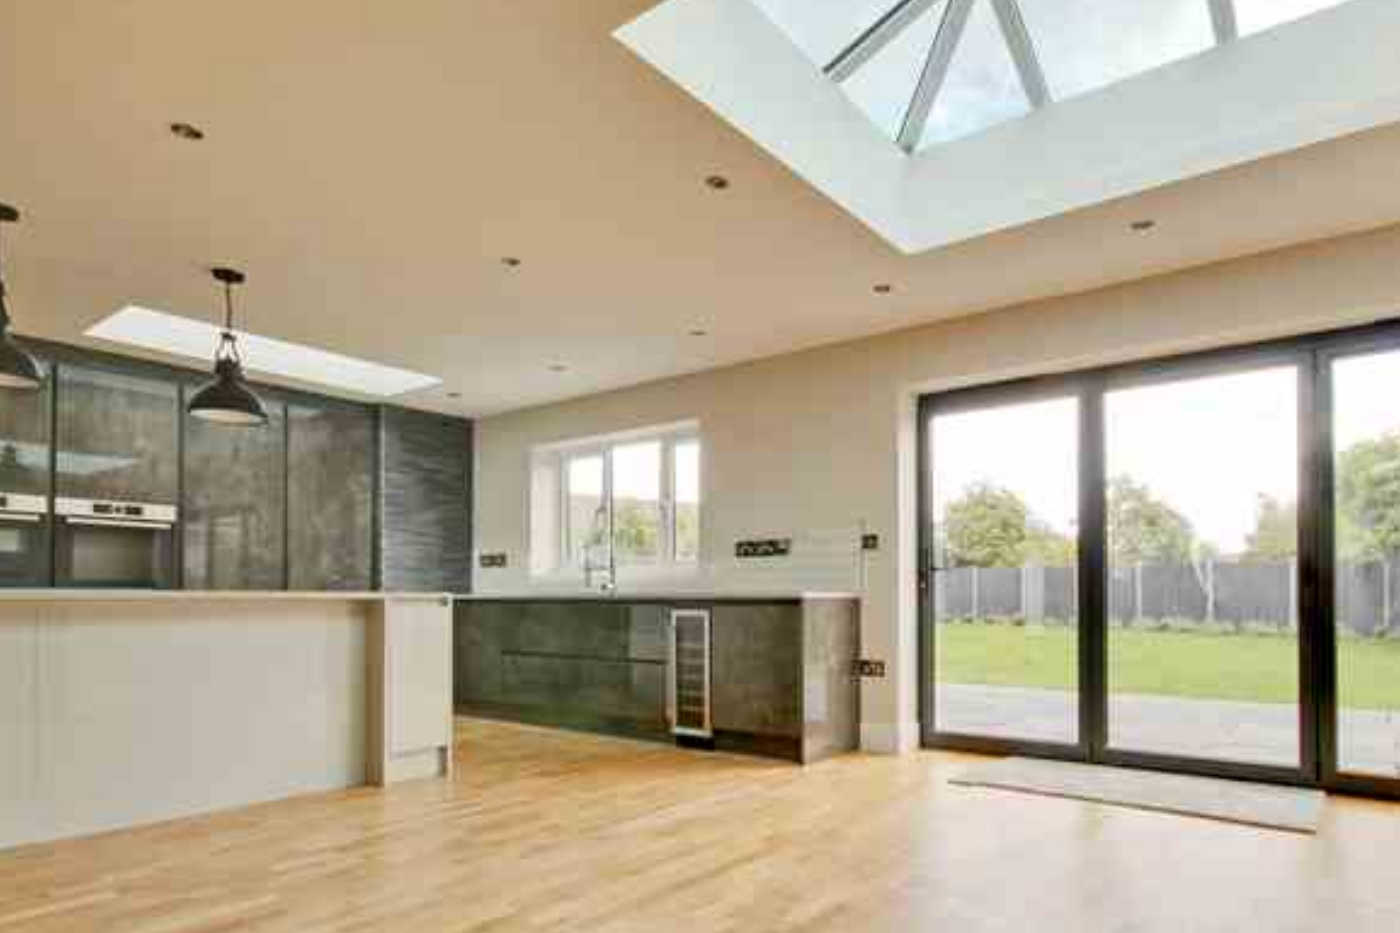 Project 1021 Internal kitchen dining room with roof lanterns